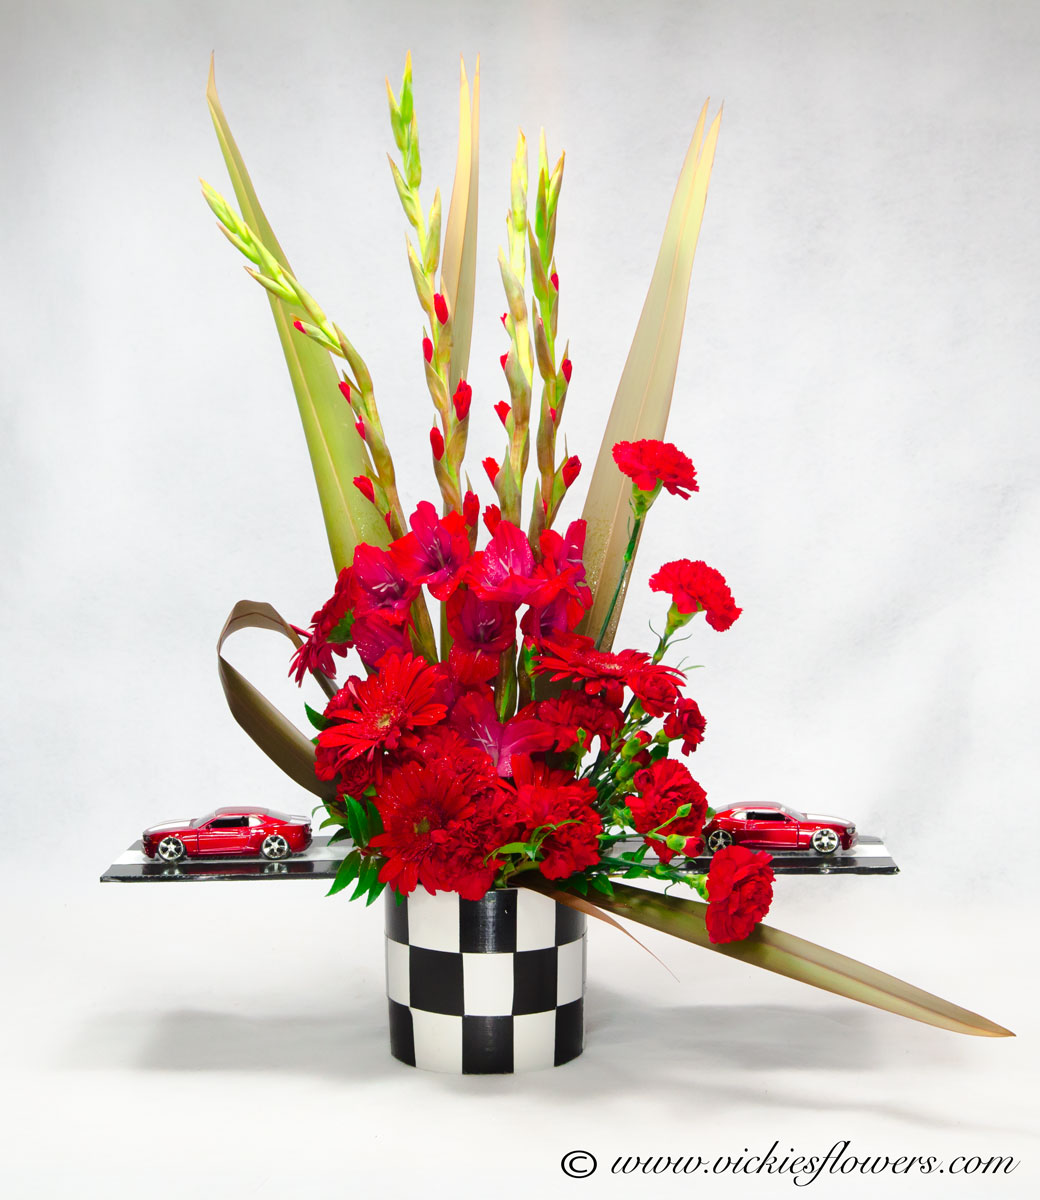 Broncos harley funeral flowers vickies flowers brighton co florist unique themed sympathy 023 150 plus tax and delivery red race car or muscle car tribute in a black and white checkered vase muscle cars are extending izmirmasajfo